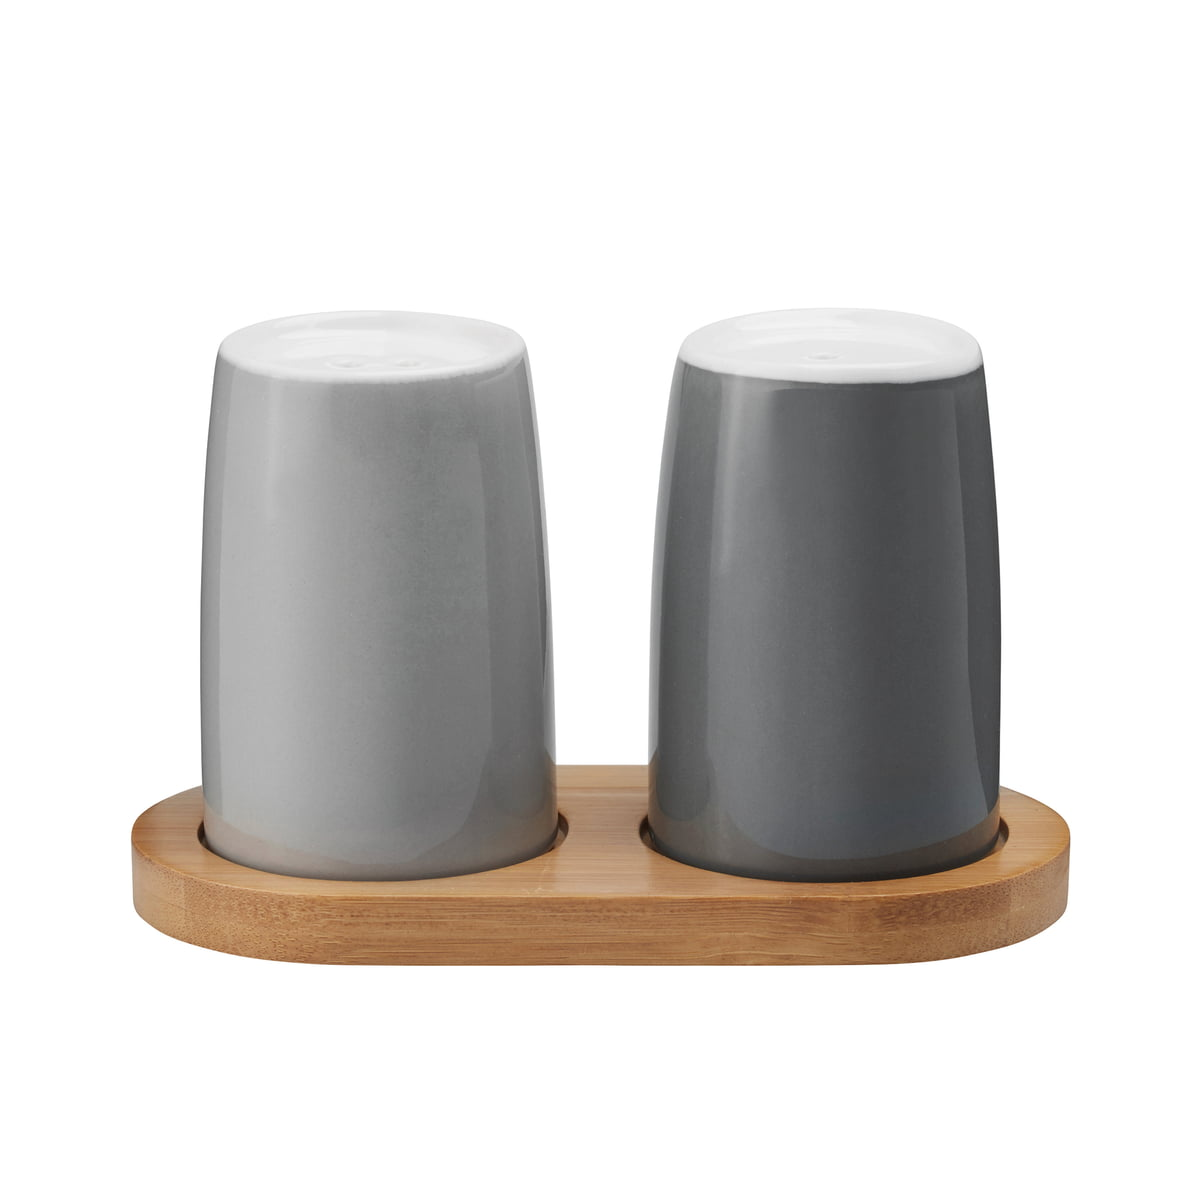 salt and pepper shakers. Stelton - Emma Salt And Pepper Shakers, Grey Shakers